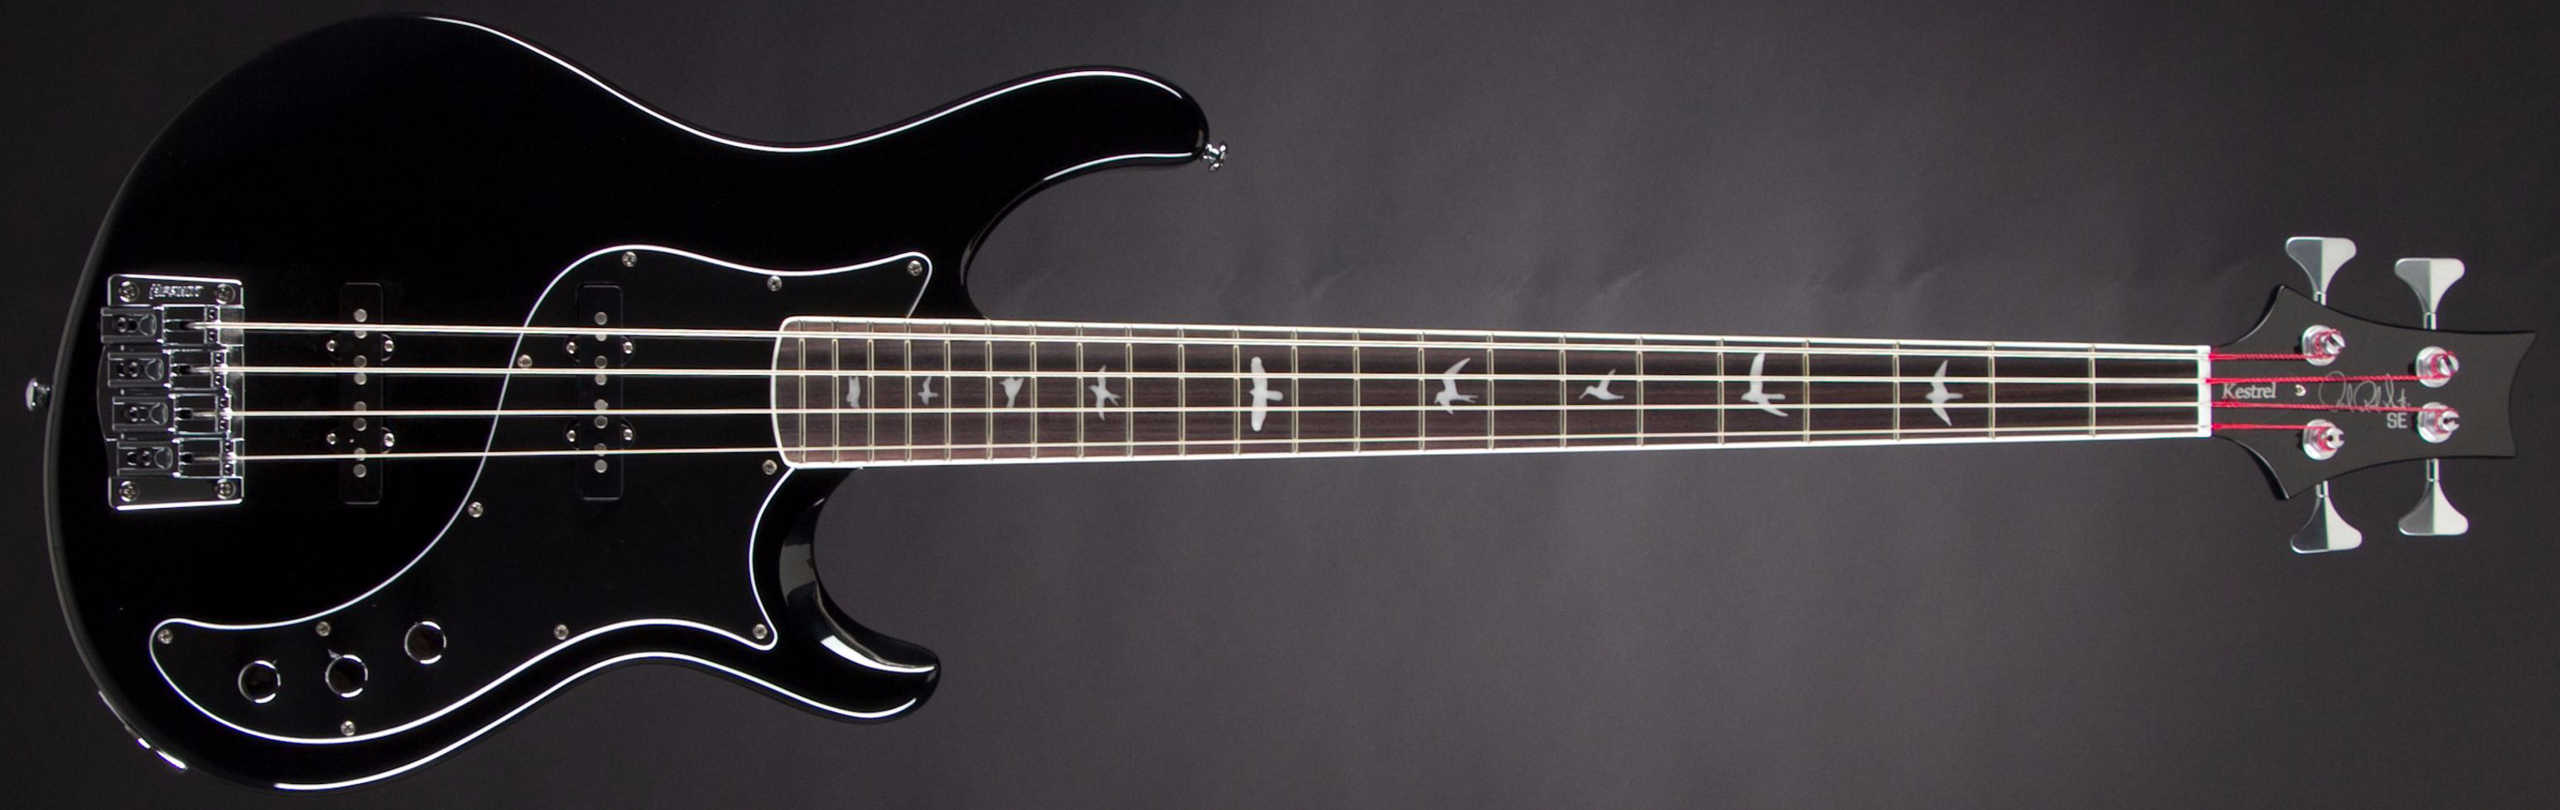 PRS SE Kestrel Black